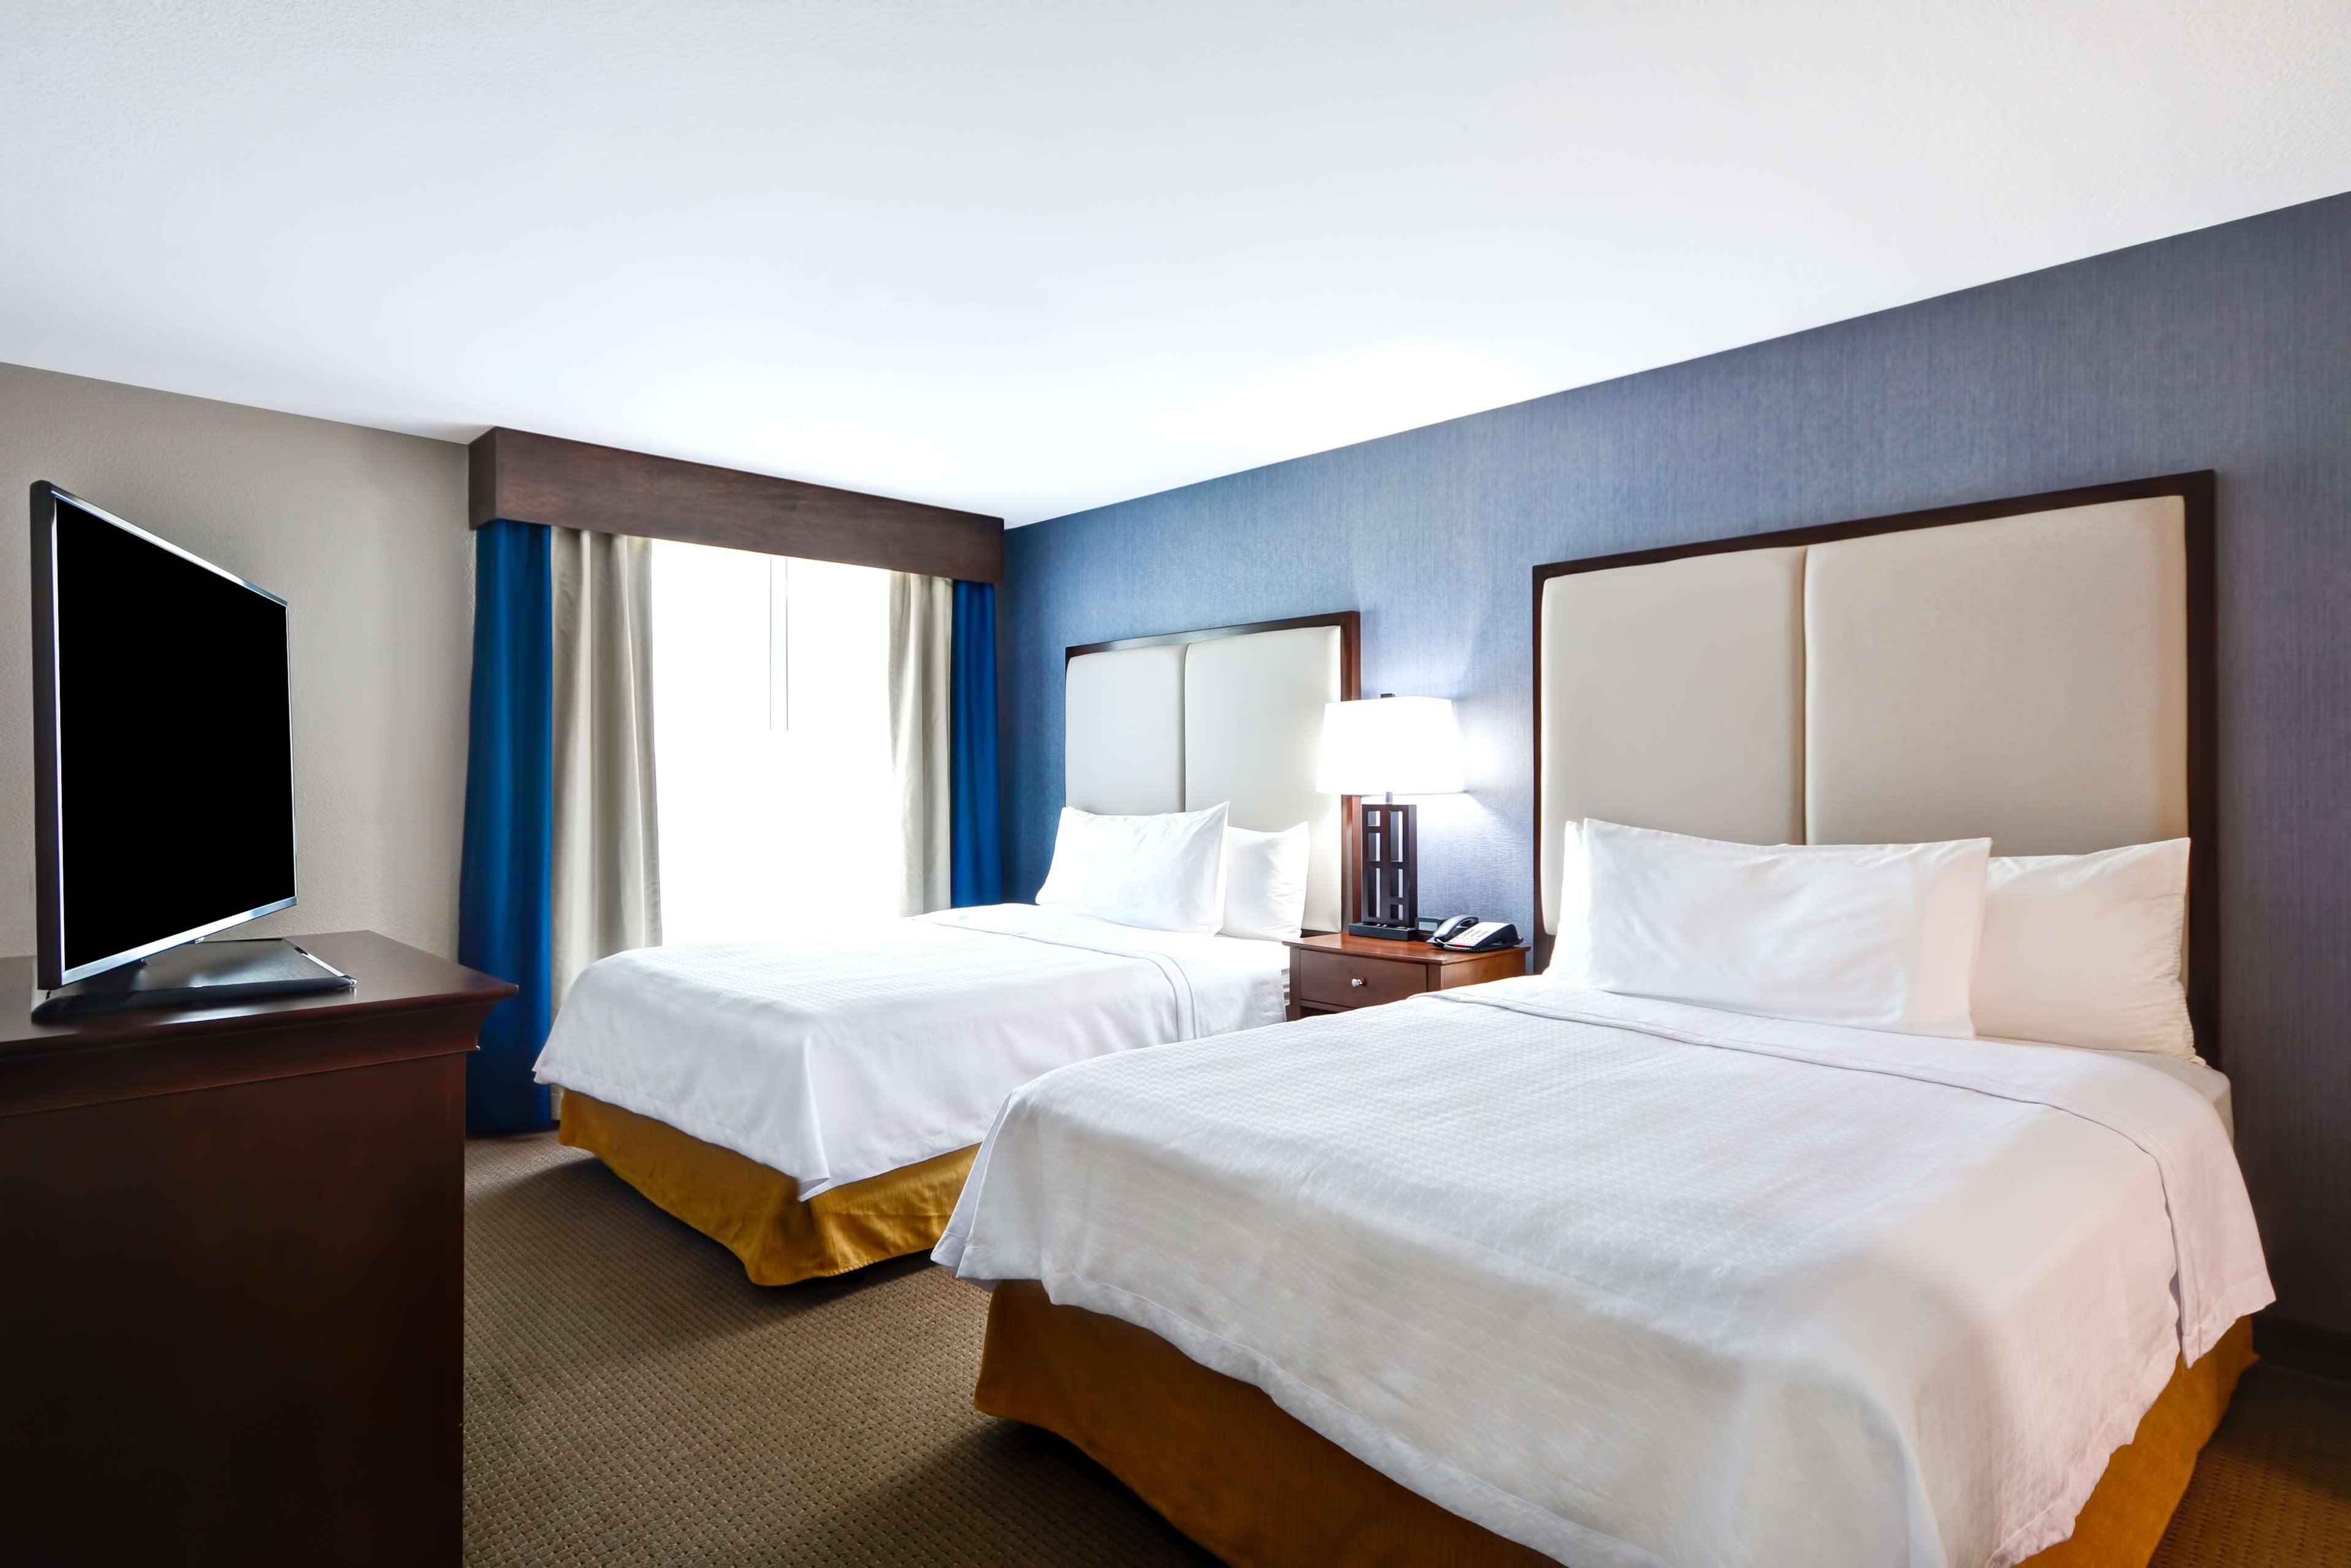 Homewood Suites by Hilton Dallas-Lewisville image 24